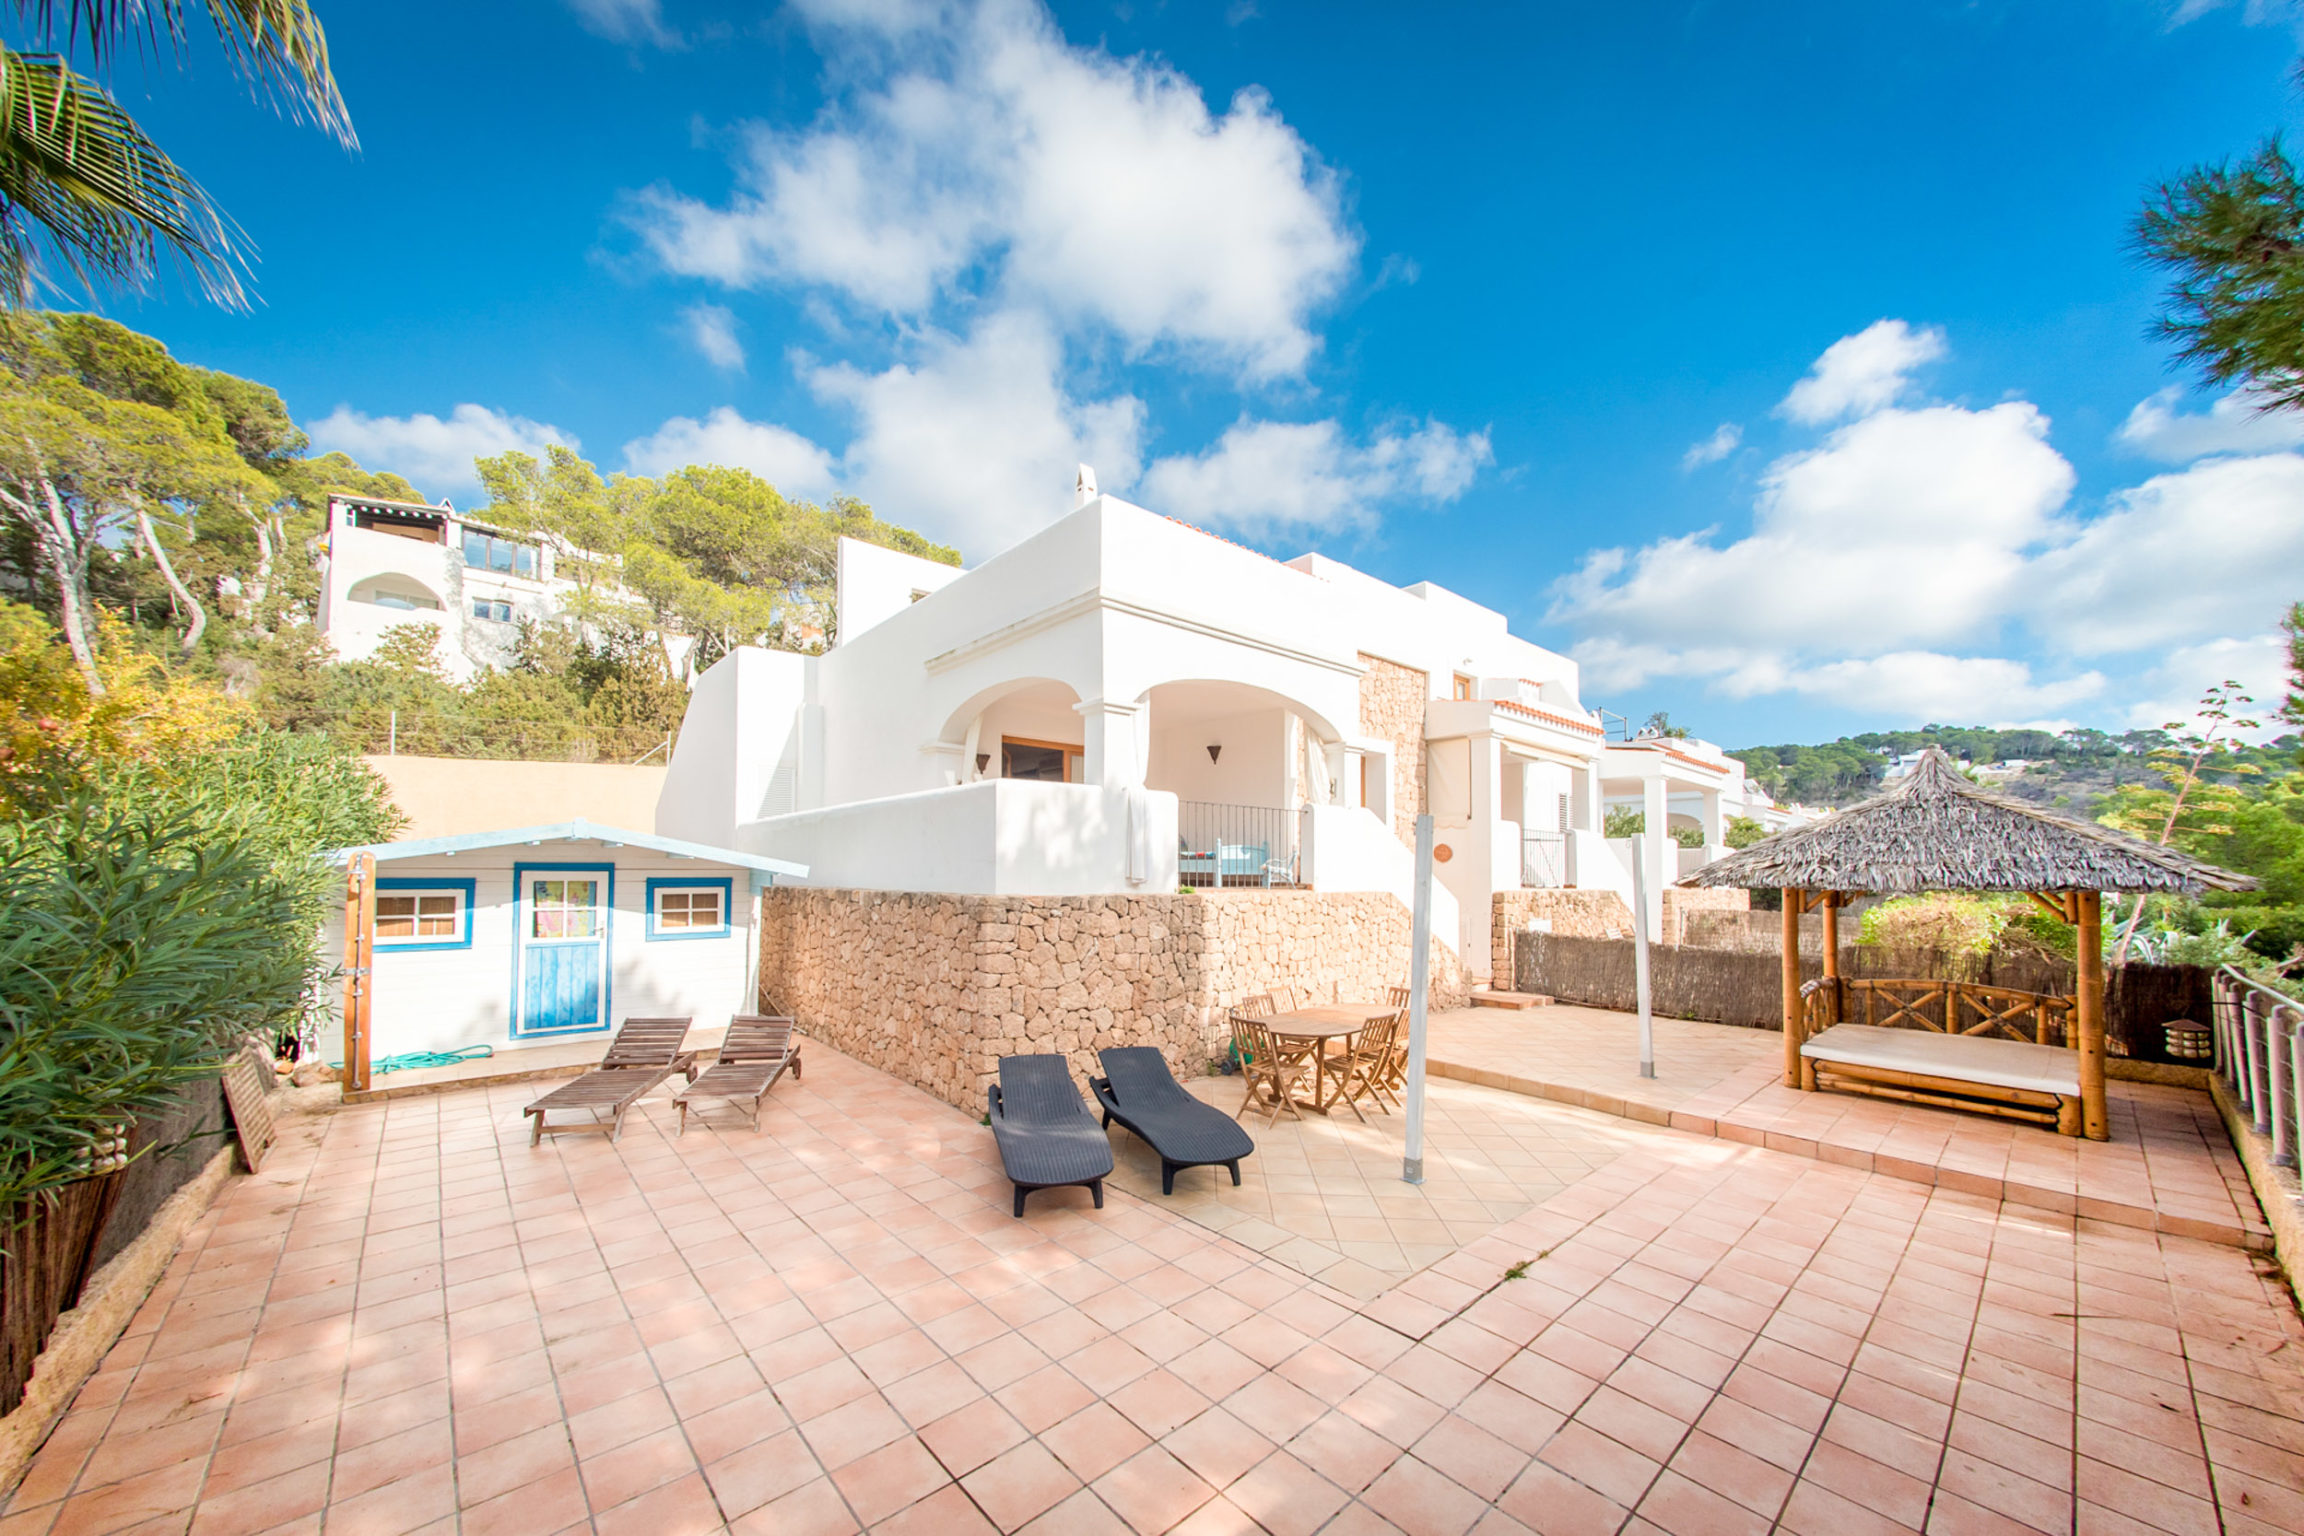 https://www.white-ibiza.com/wp-content/uploads/2020/03/white-ibiza-property-WI137-2020-13-2304x1536.jpg